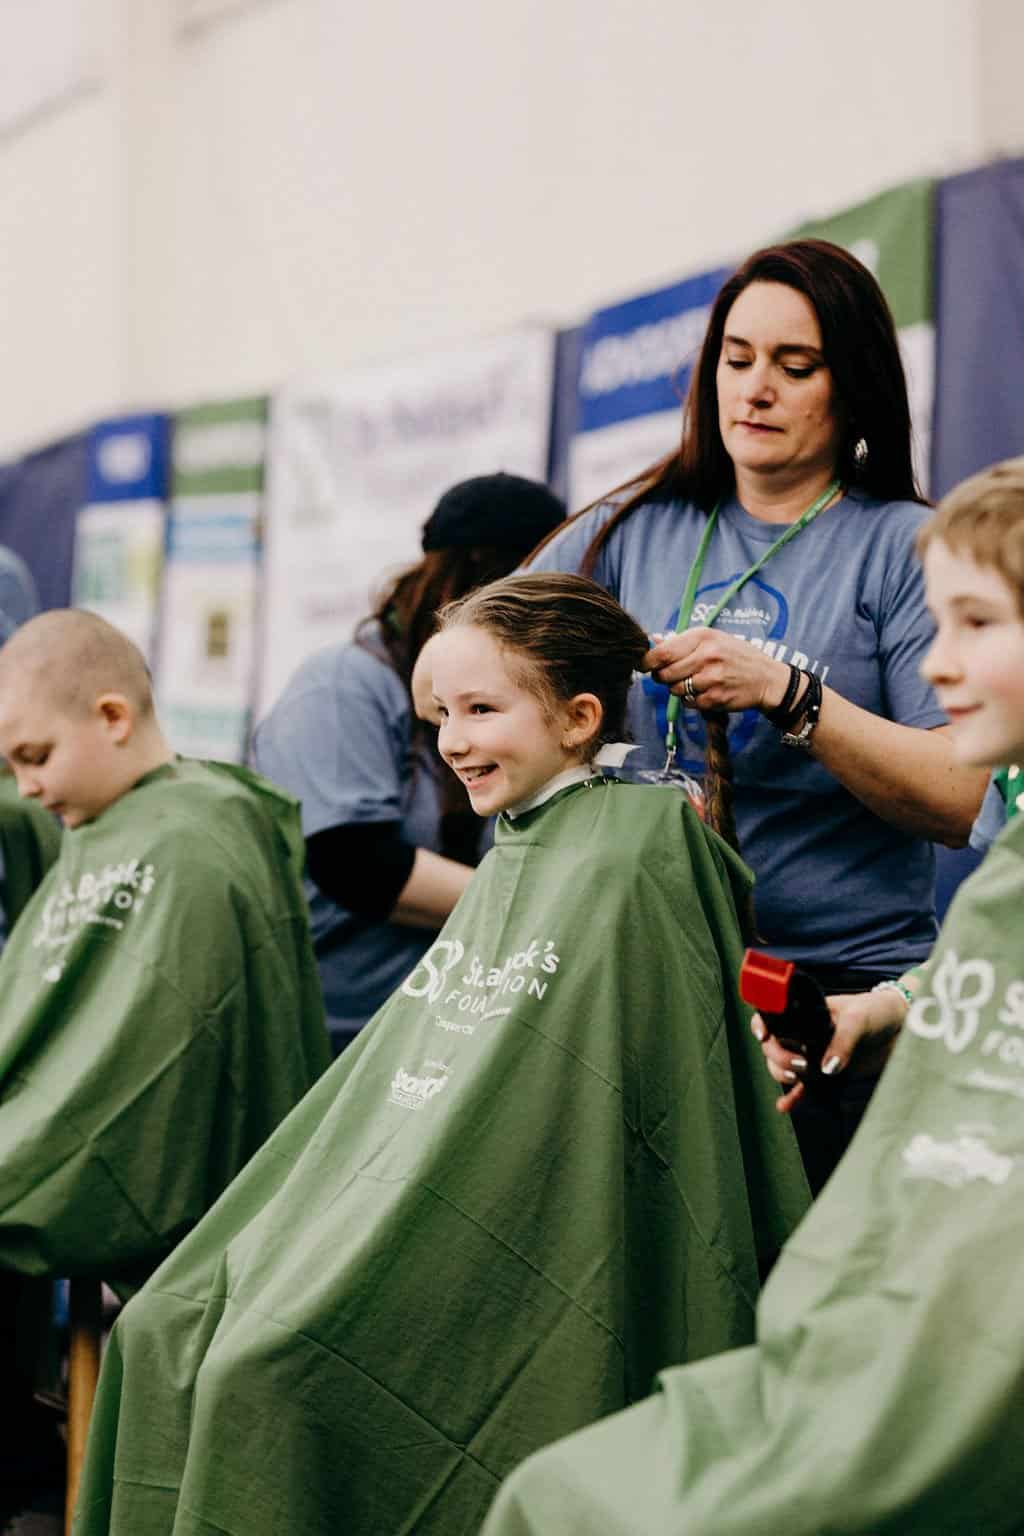 St. Baldricks | I bet you wouldn't shave your head 137